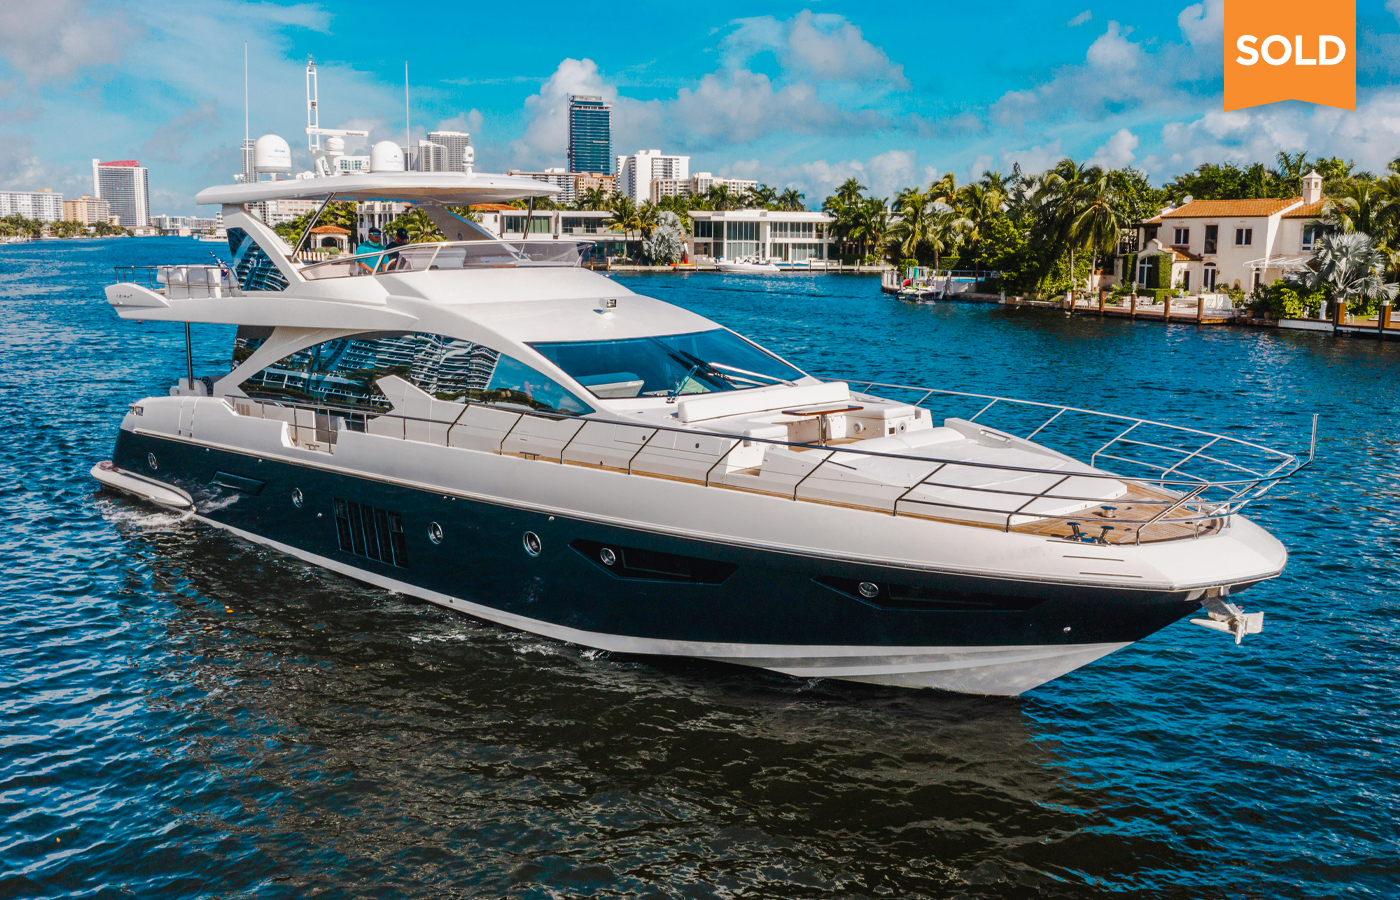 80 Azimut Motor Yacht Sold By Juno Prudhomm